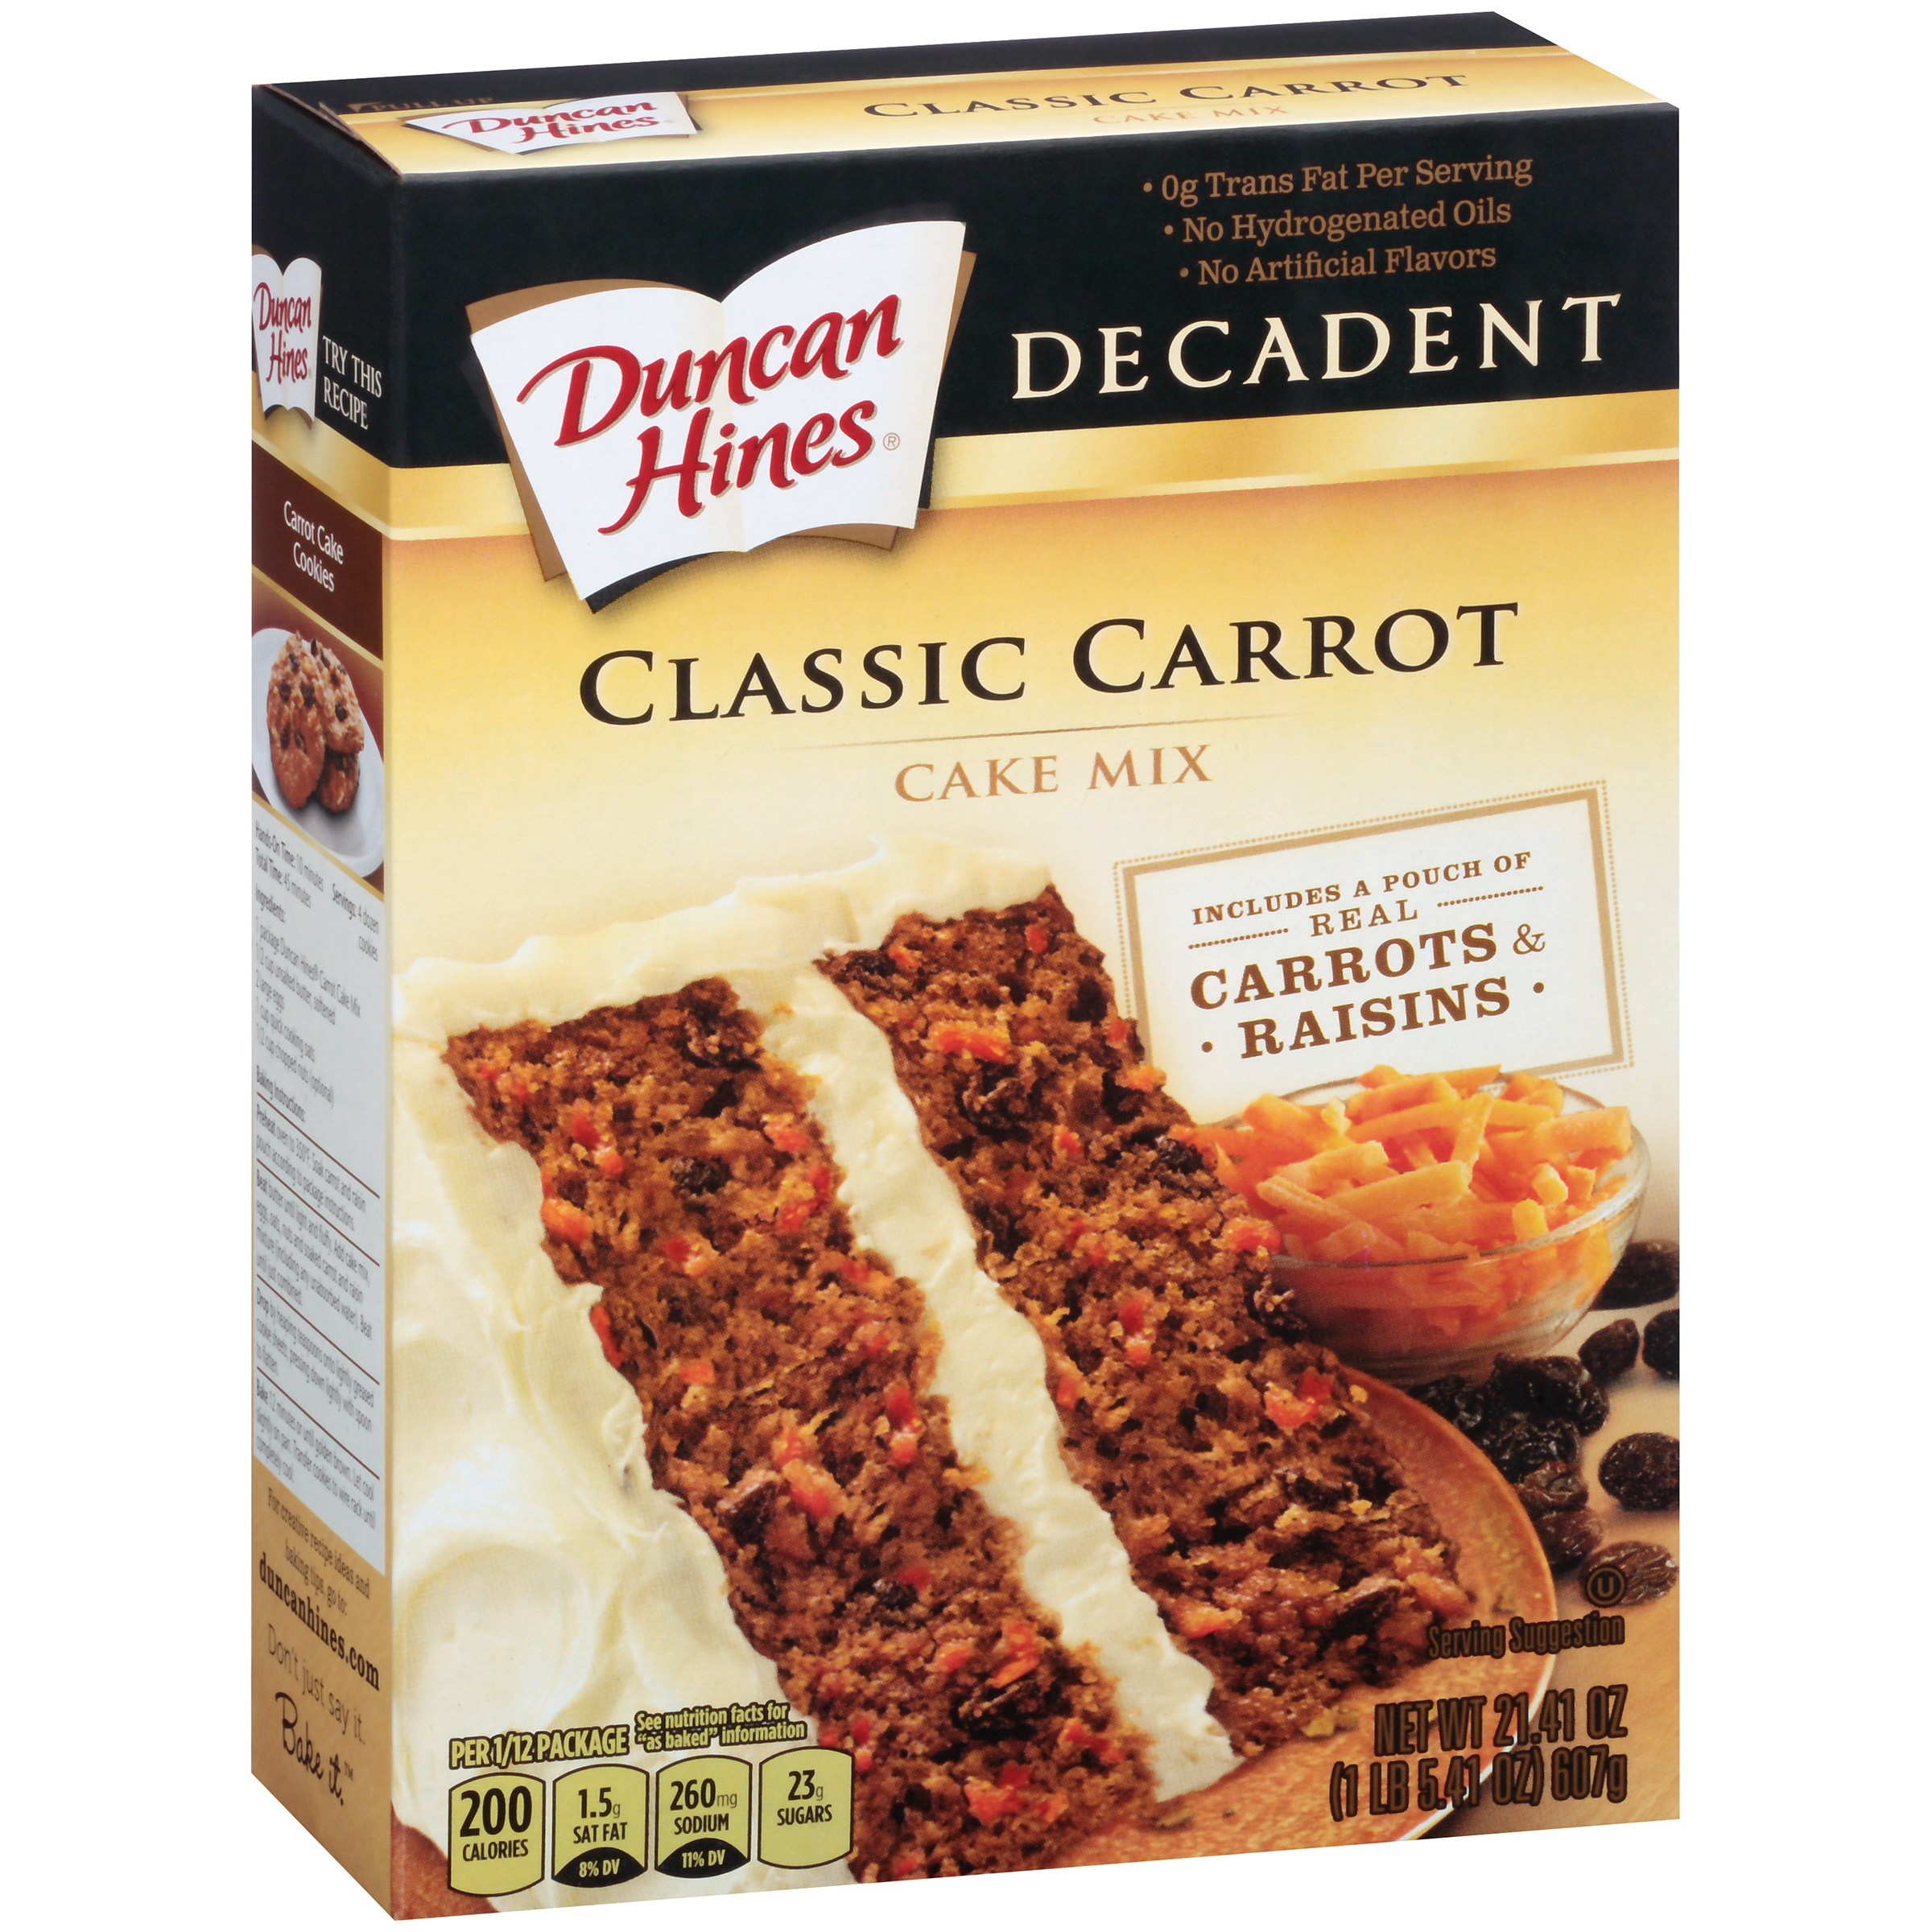 Duncan Hines® Decadent Classic Carrot Cake Mix 21.41 oz. Box